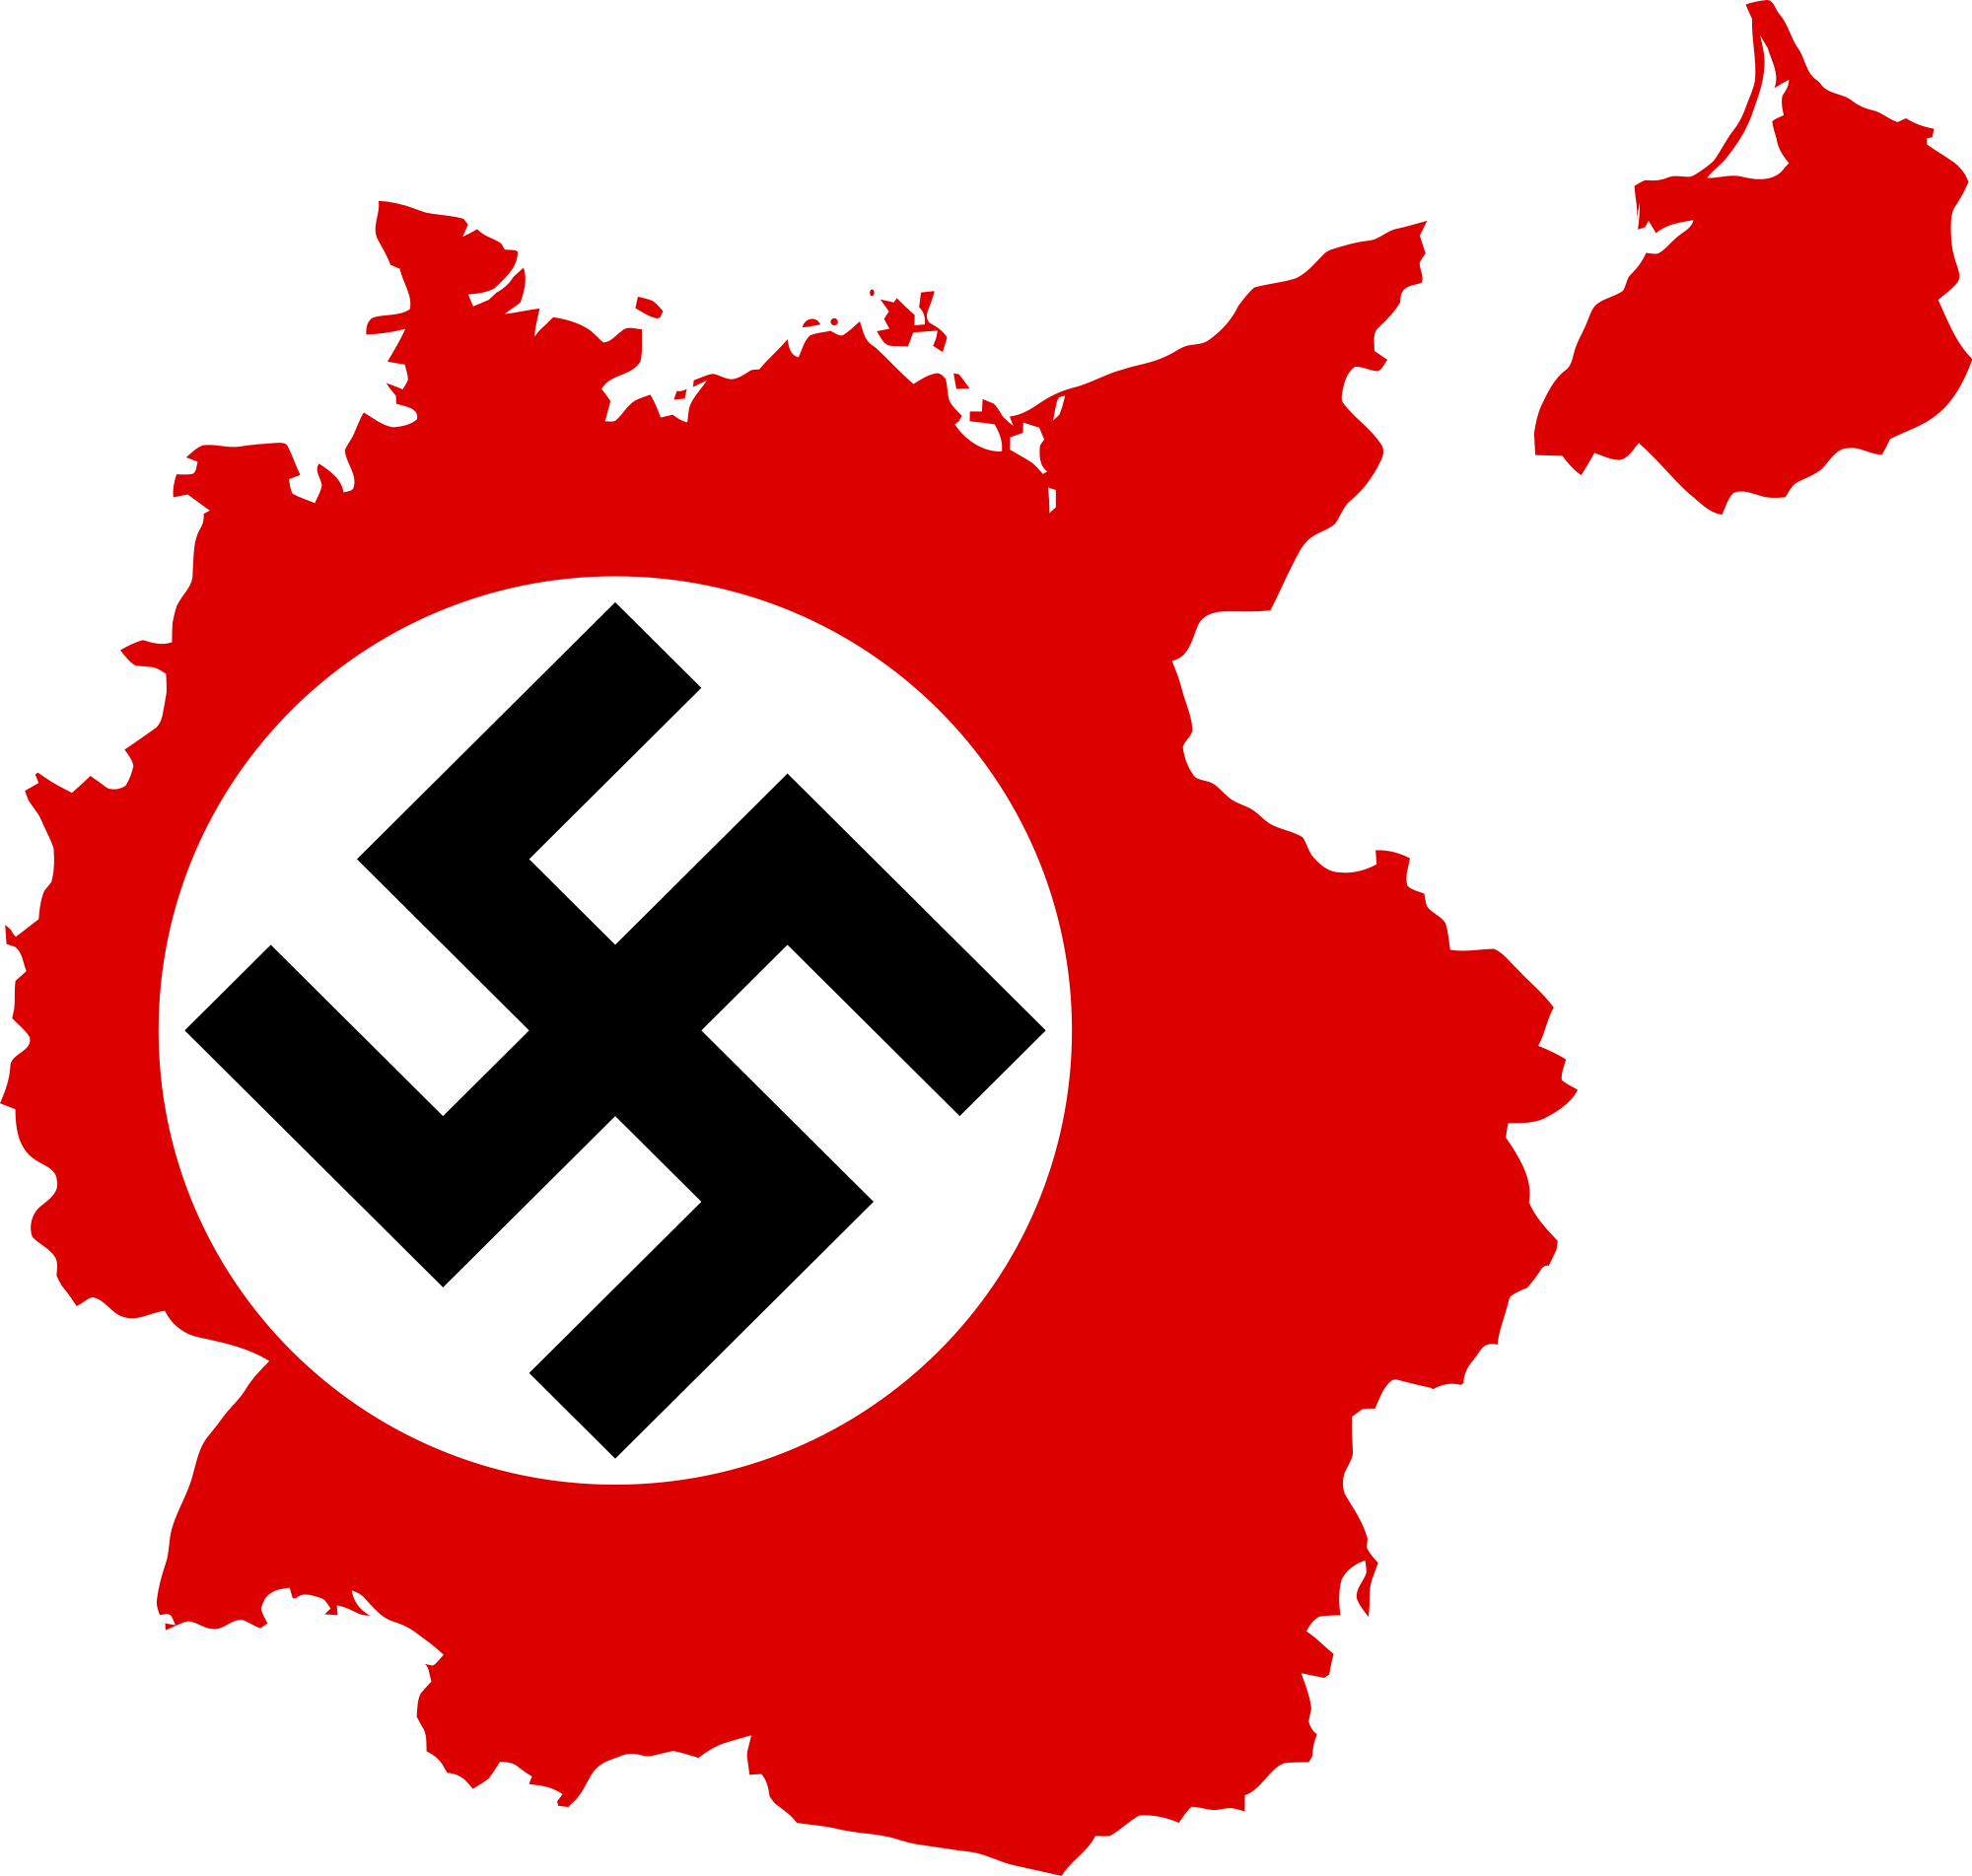 Nazi flag png. File map of germany